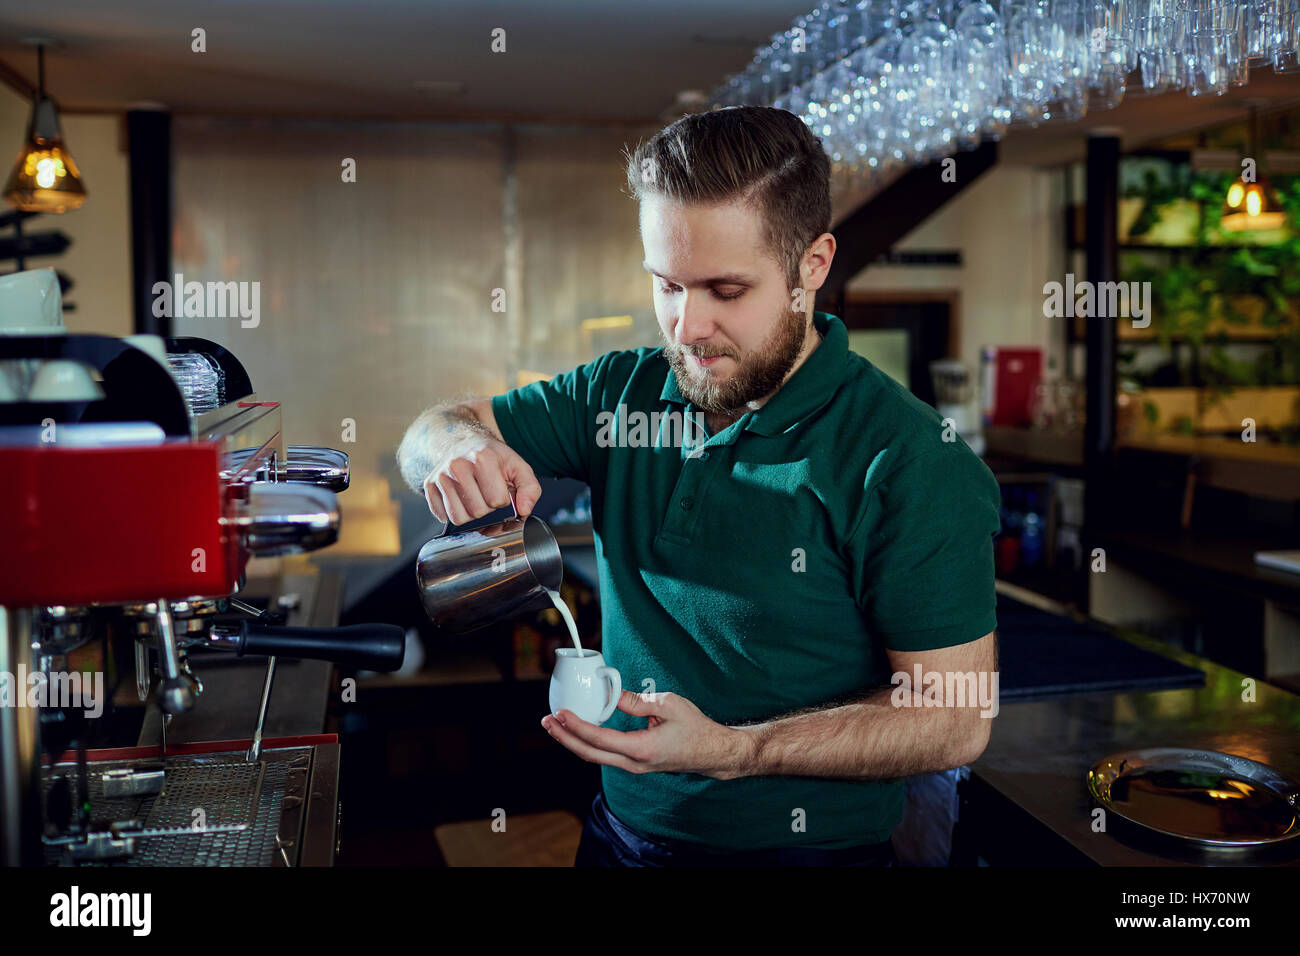 The bartender barista pours  hot milk into a glass in  bar cafe  - Stock Image